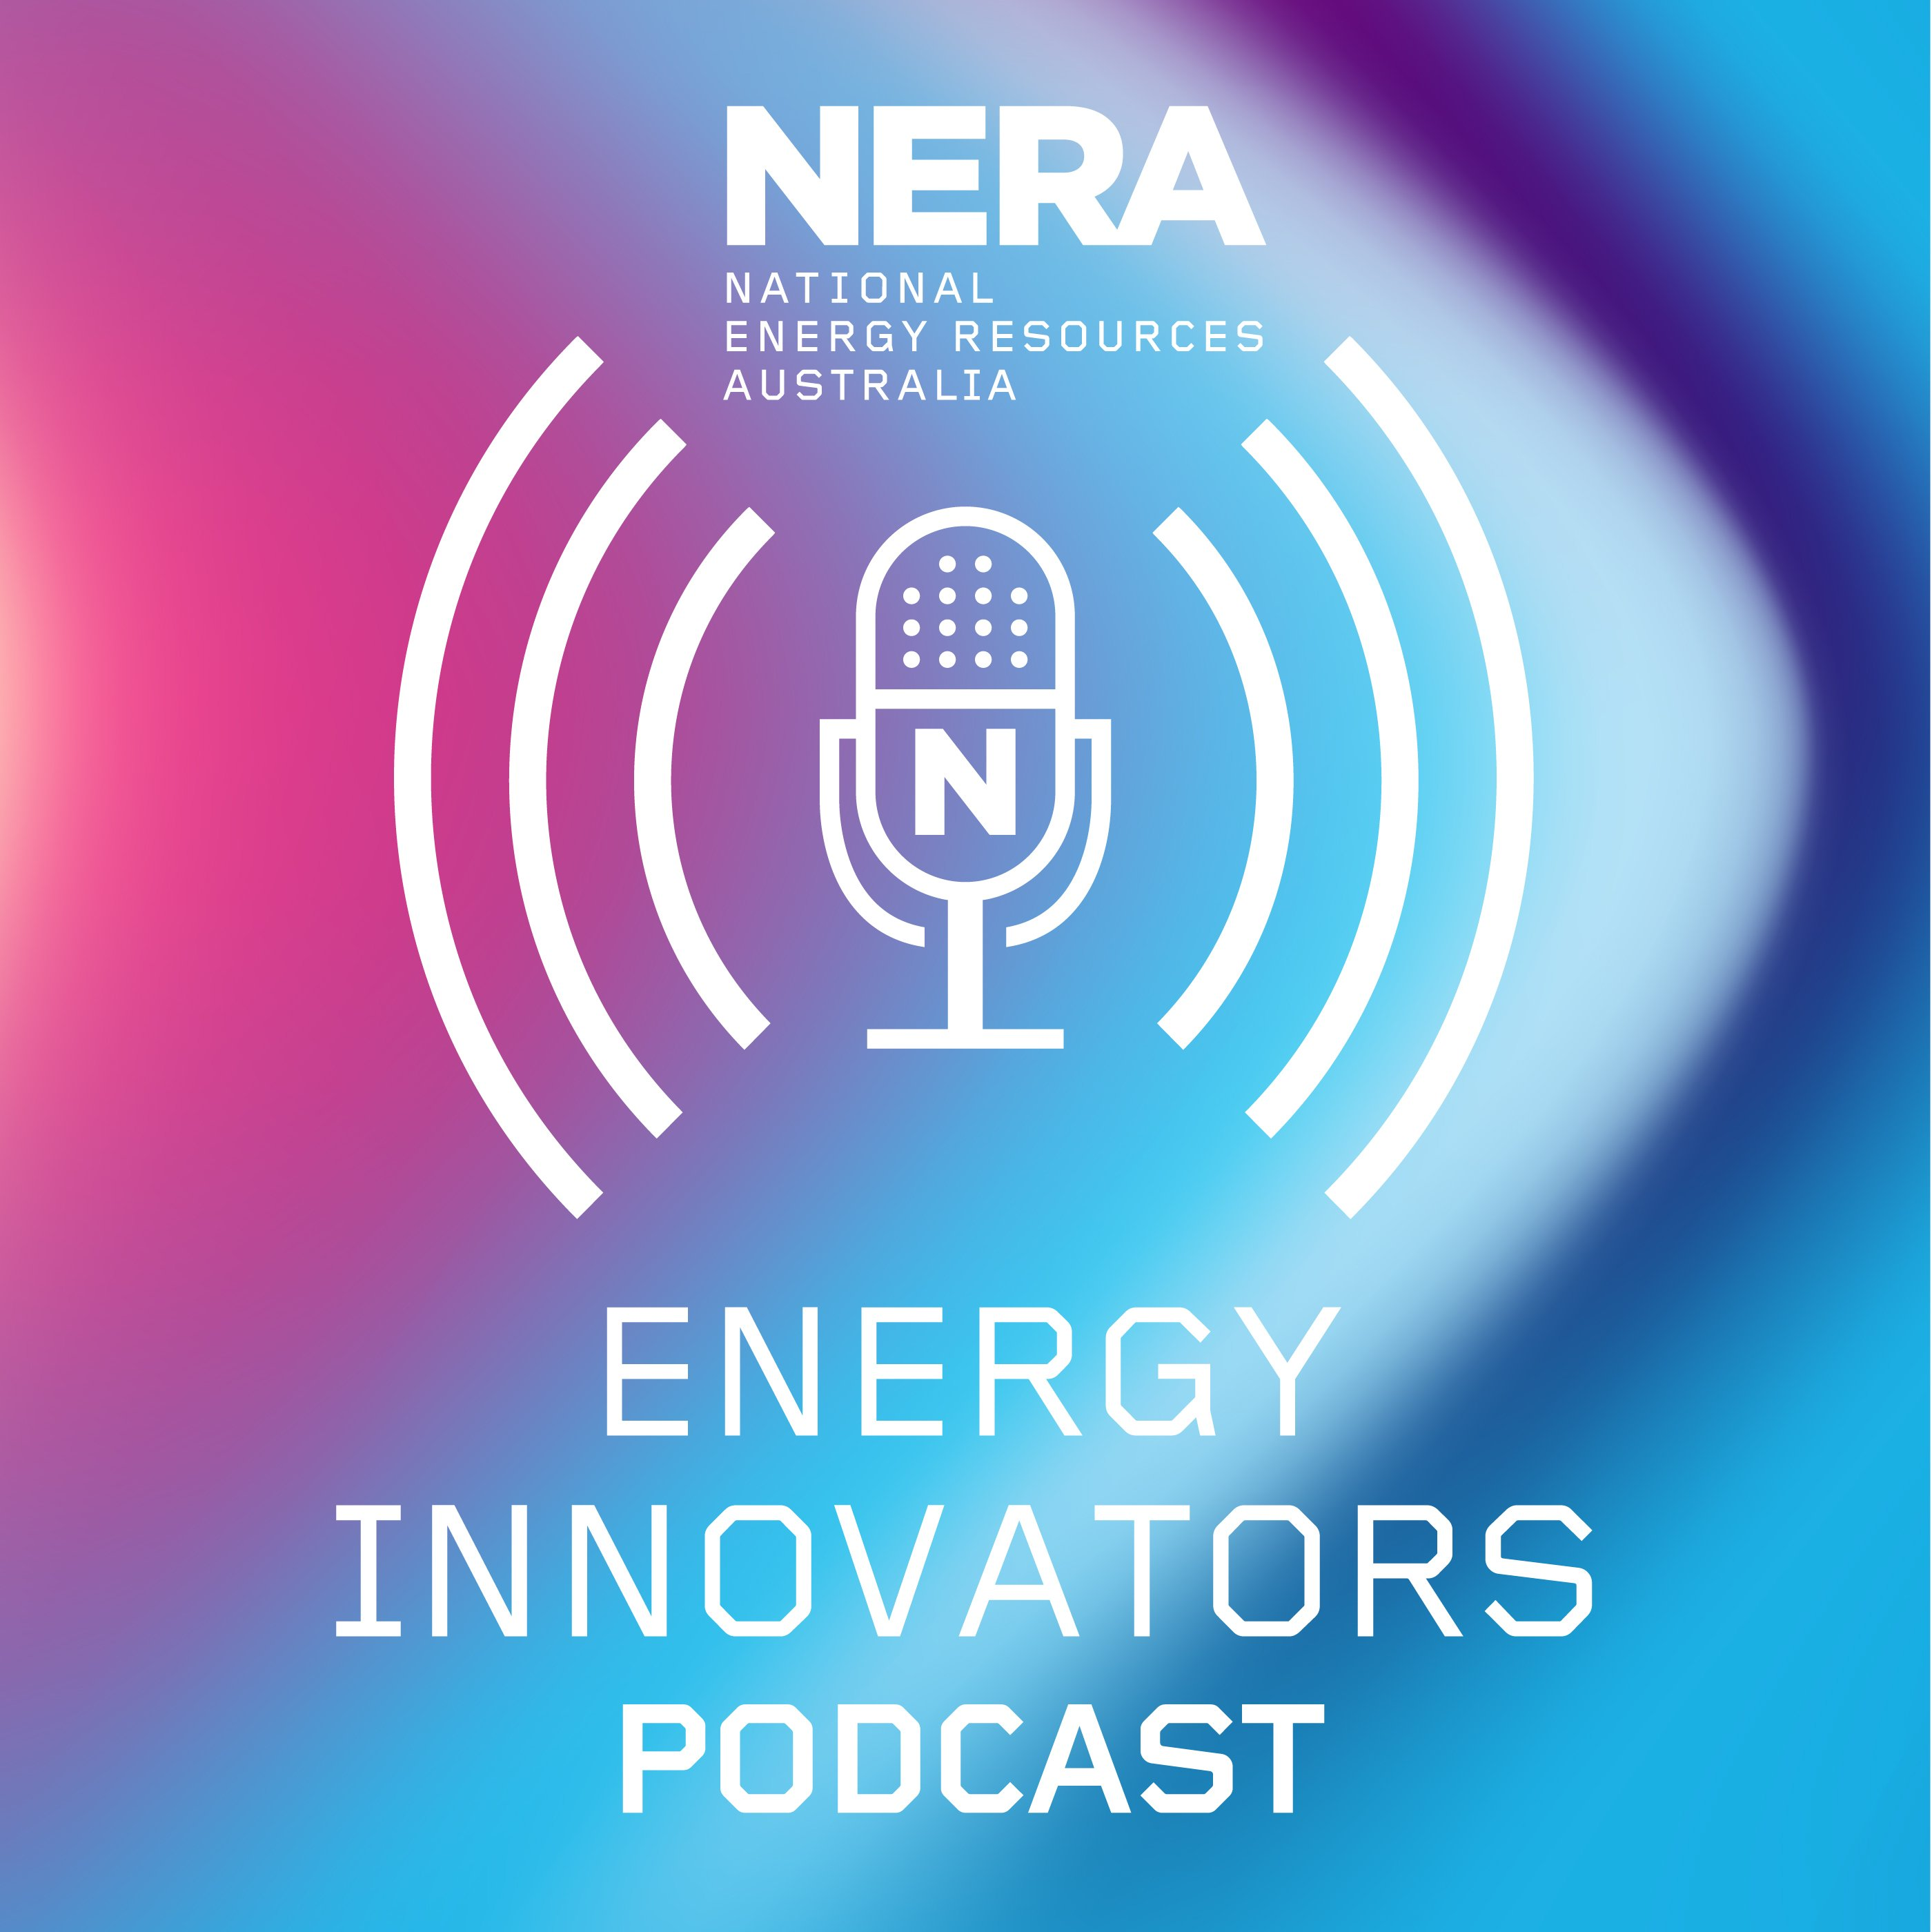 The Energy Innovators Podcast